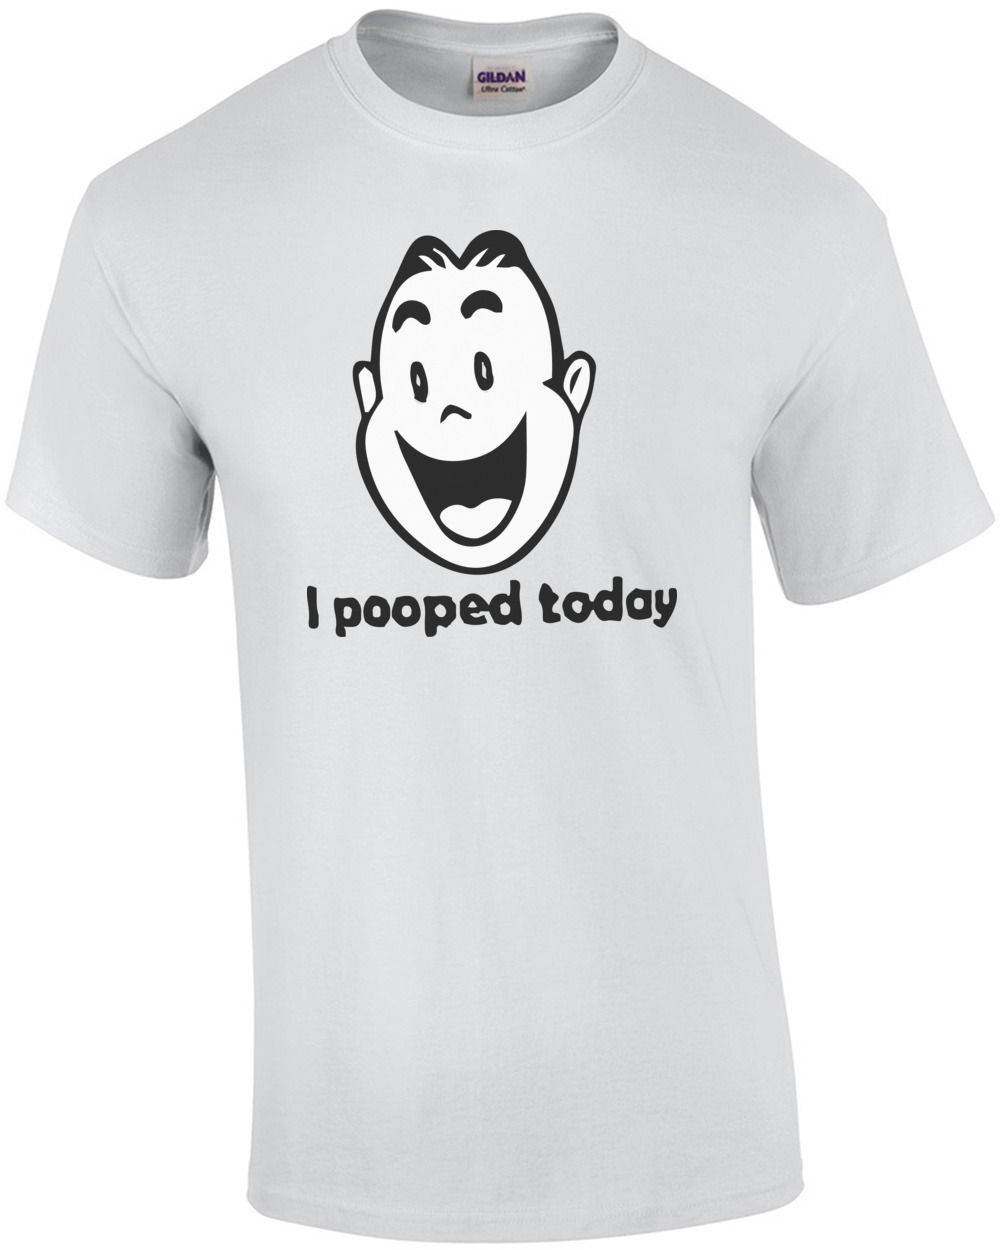 I Pooped Today - Funny T-Shirt shirt